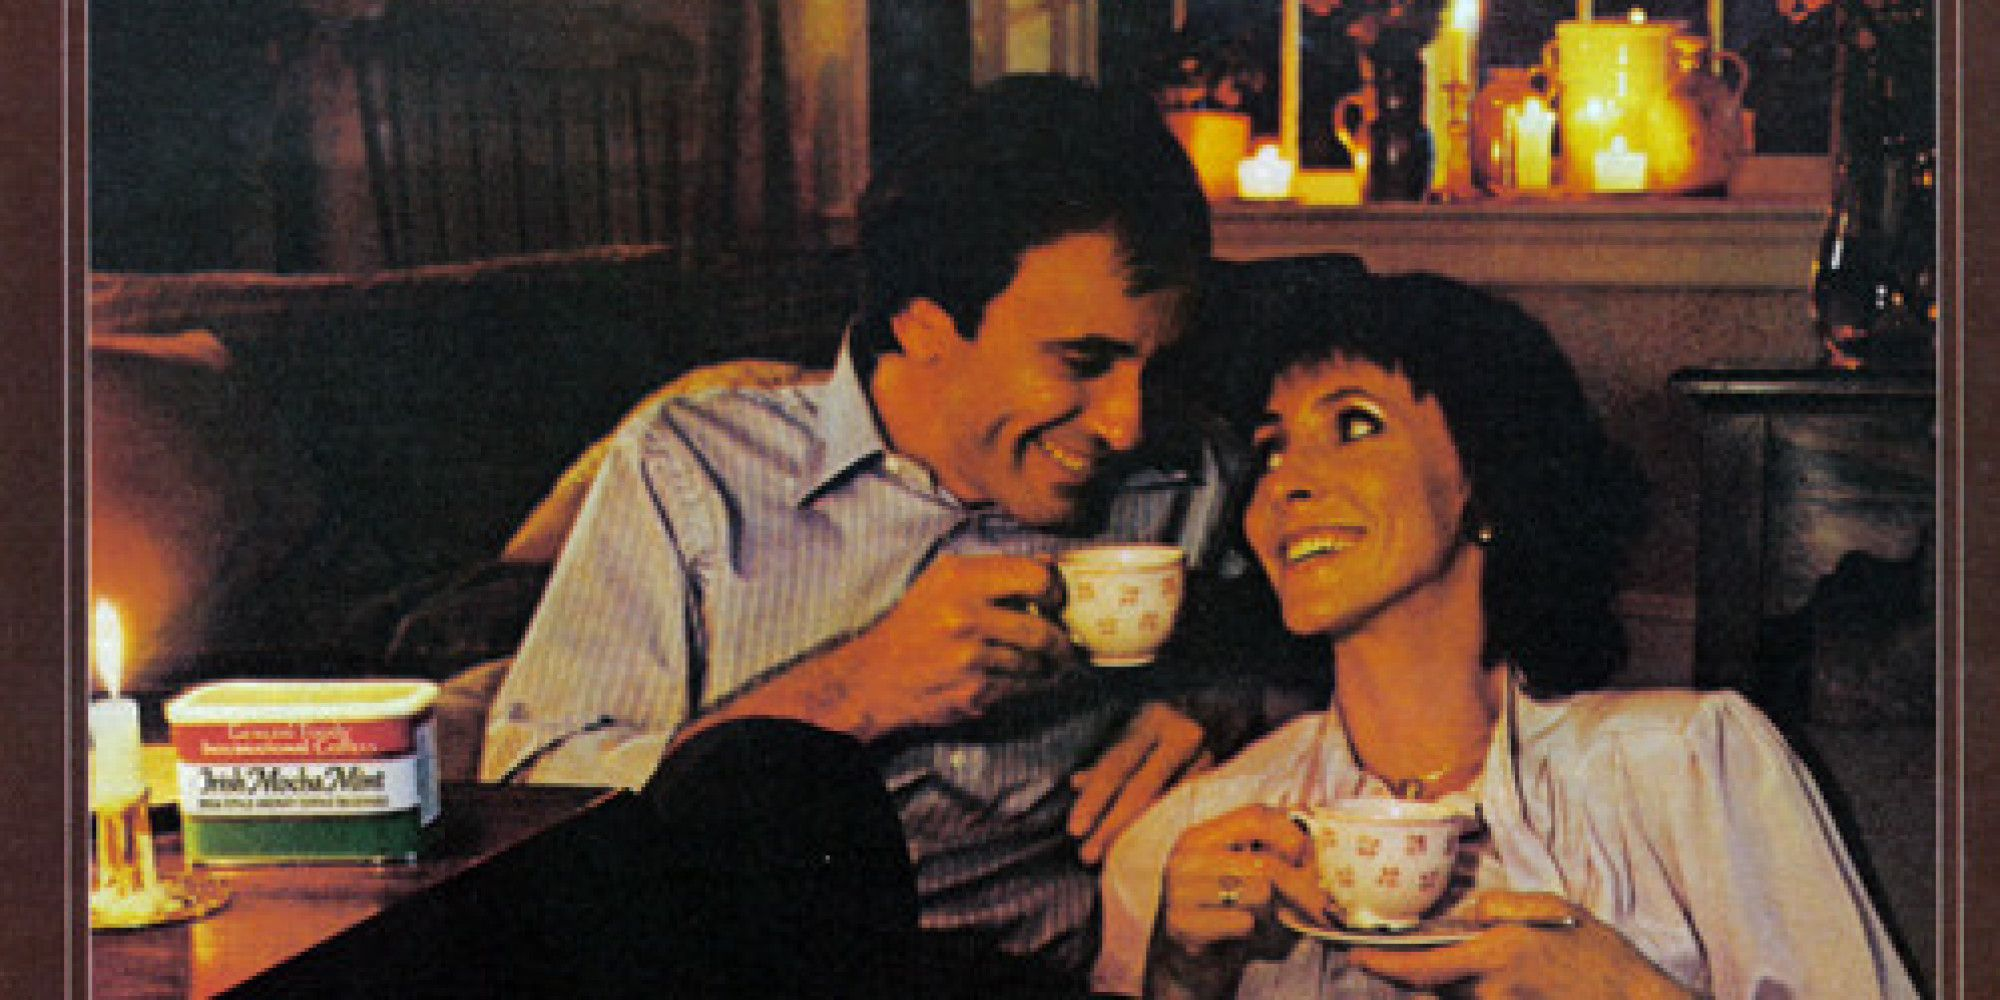 We bet you about these coffee commercials